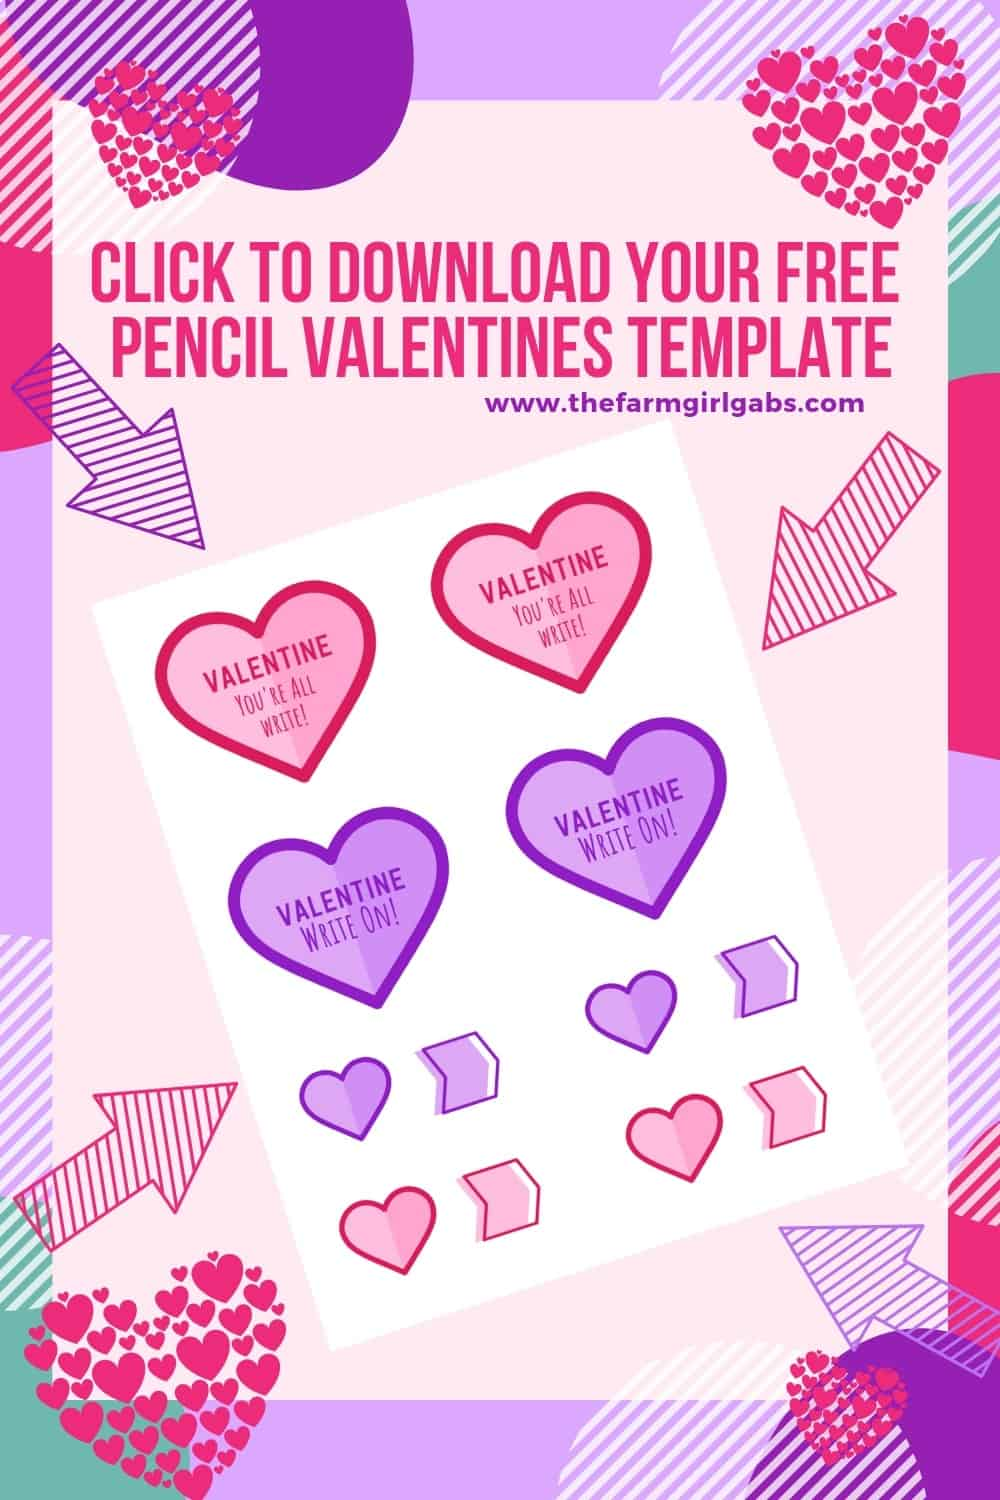 Tell your Valentines they are all right (or is it write?) with these adorable Cupid's Arrow Printable Pencil Valentines.